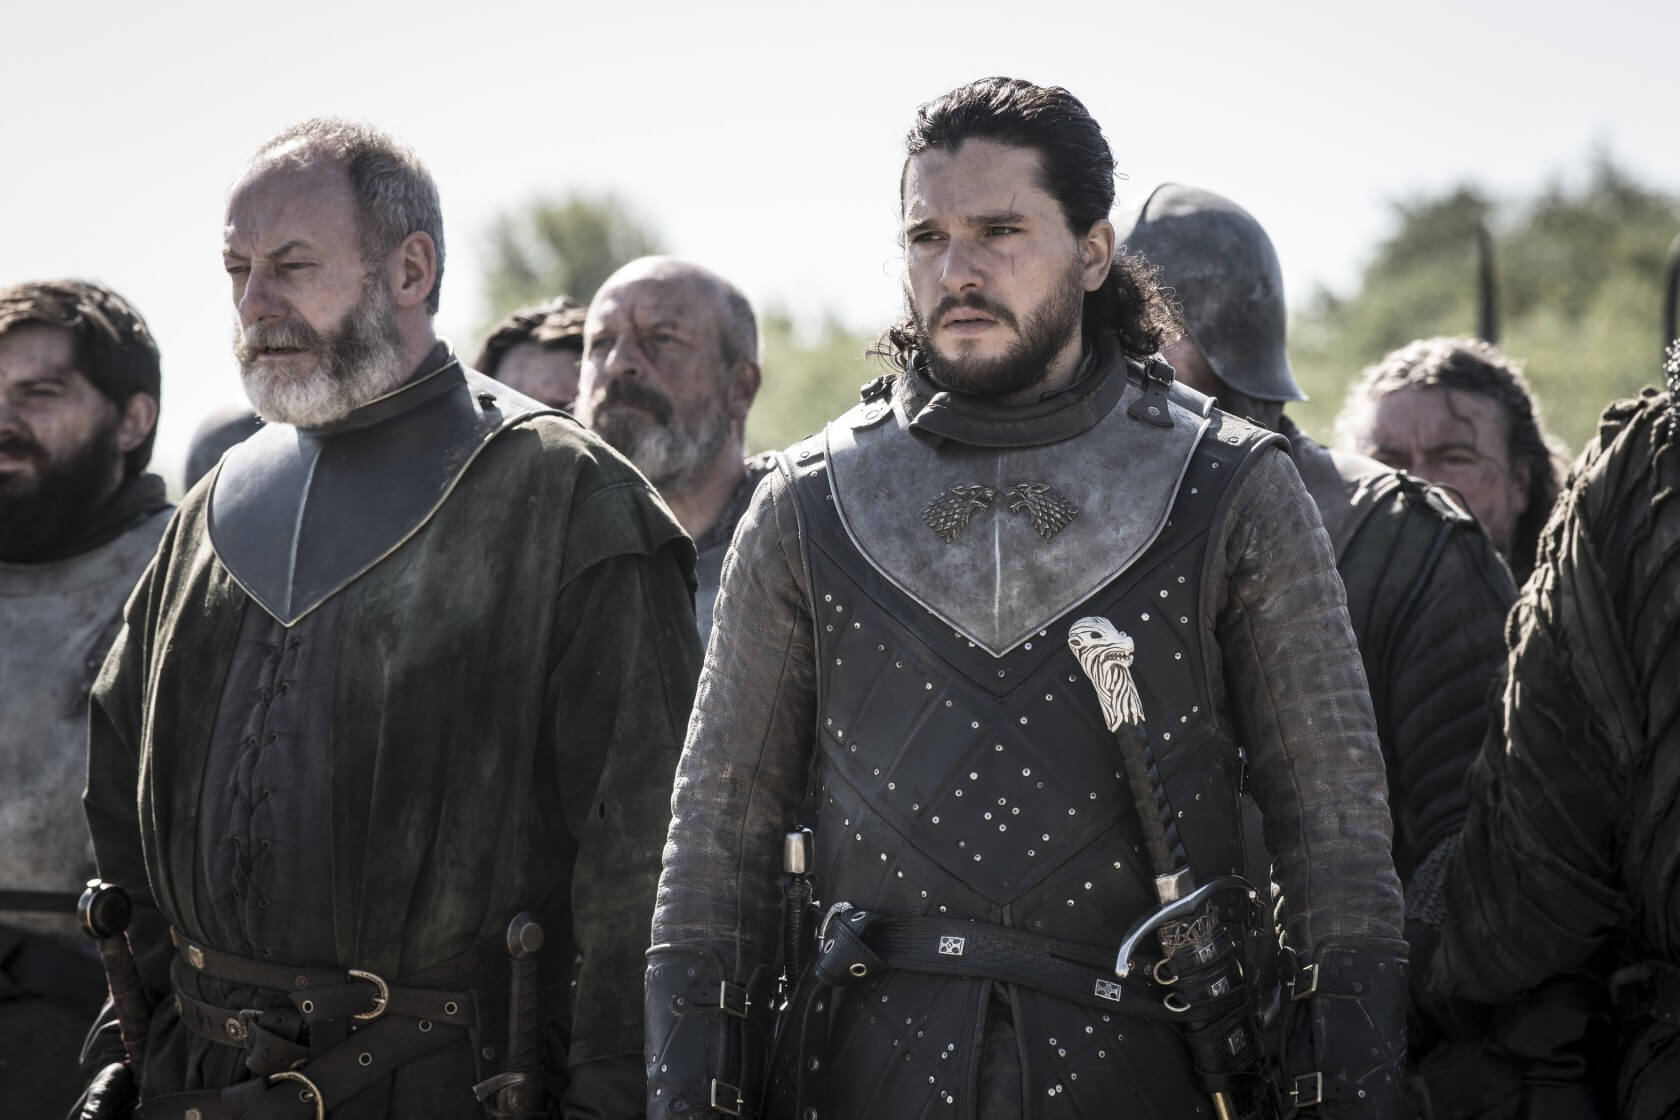 Game of Thrones fans abuse Google algorithms to link the search term 'bad writers' to photos of the show's creators